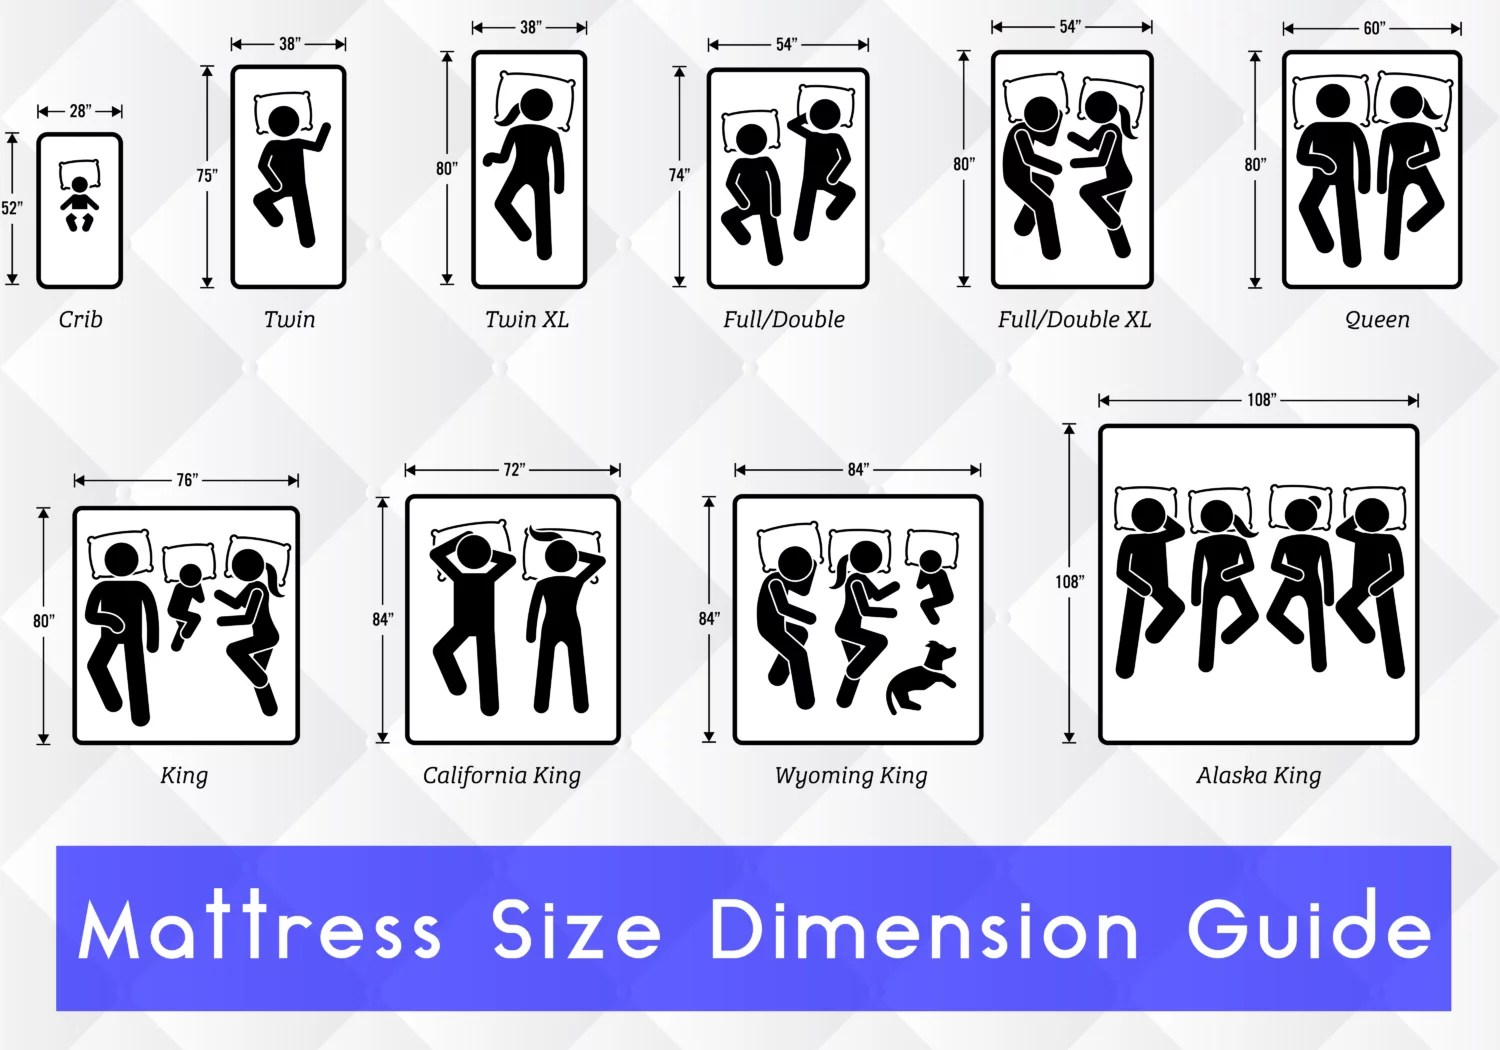 Mattress Size Chart And Mattress Dimesions